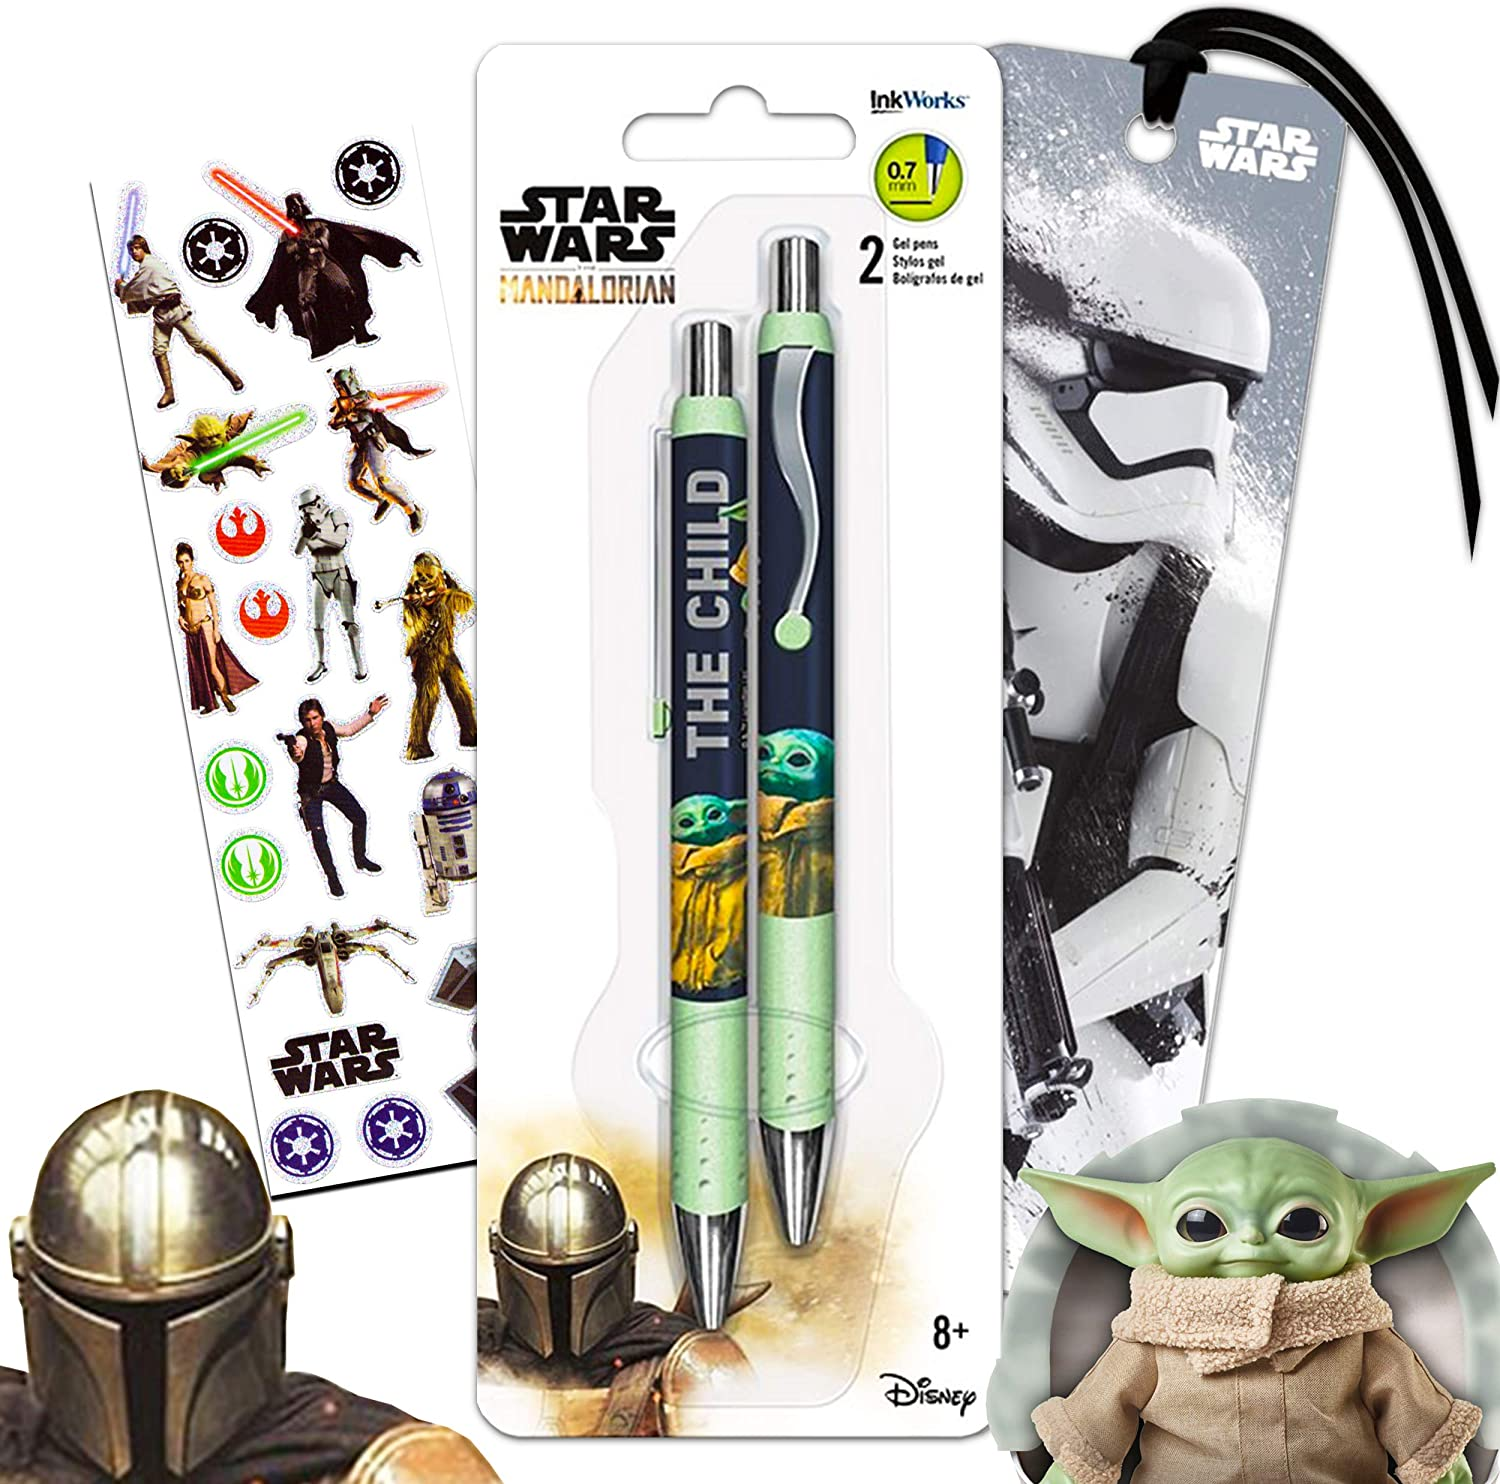 Mandalorian Party Supplies Baby Yoda Pen Bundle - 4 Pc Star Wars Mandalorian Office Accessories with Baby Yoda Pen, Stormtrooper Bookmark, and Classic Star Wars Stickers (Mandalorian Party Supplies)